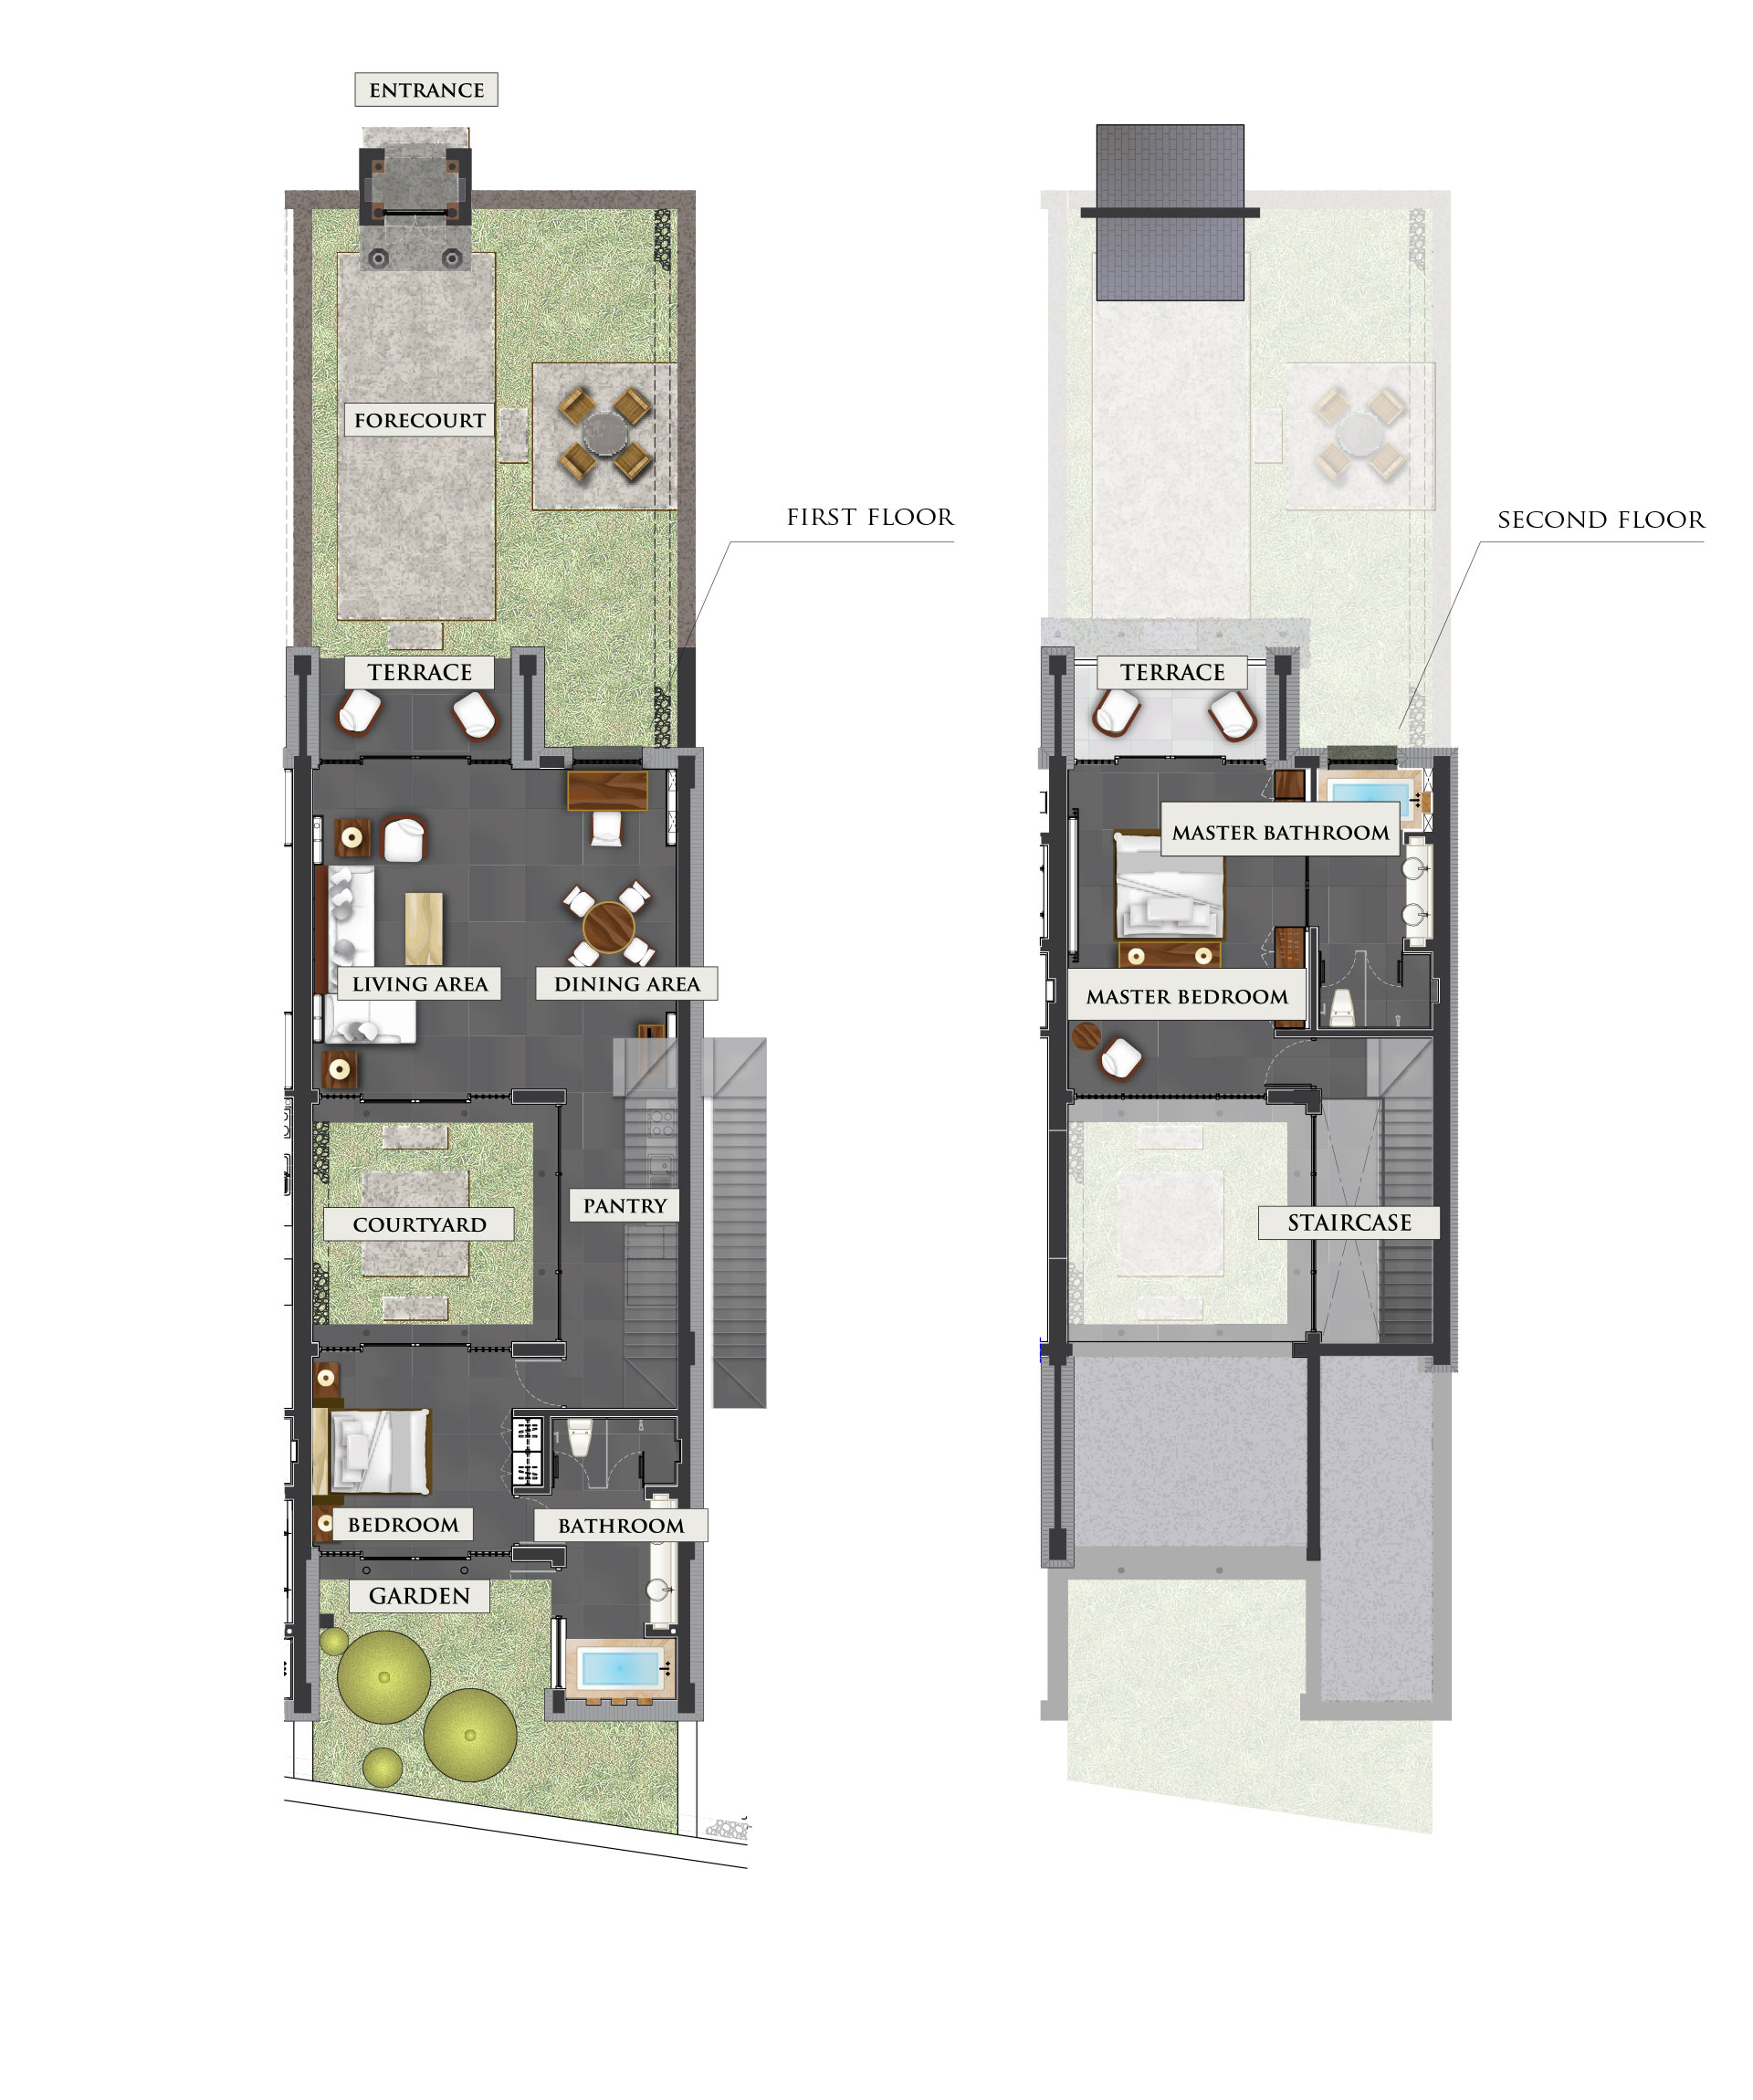 floorplan twobedroom